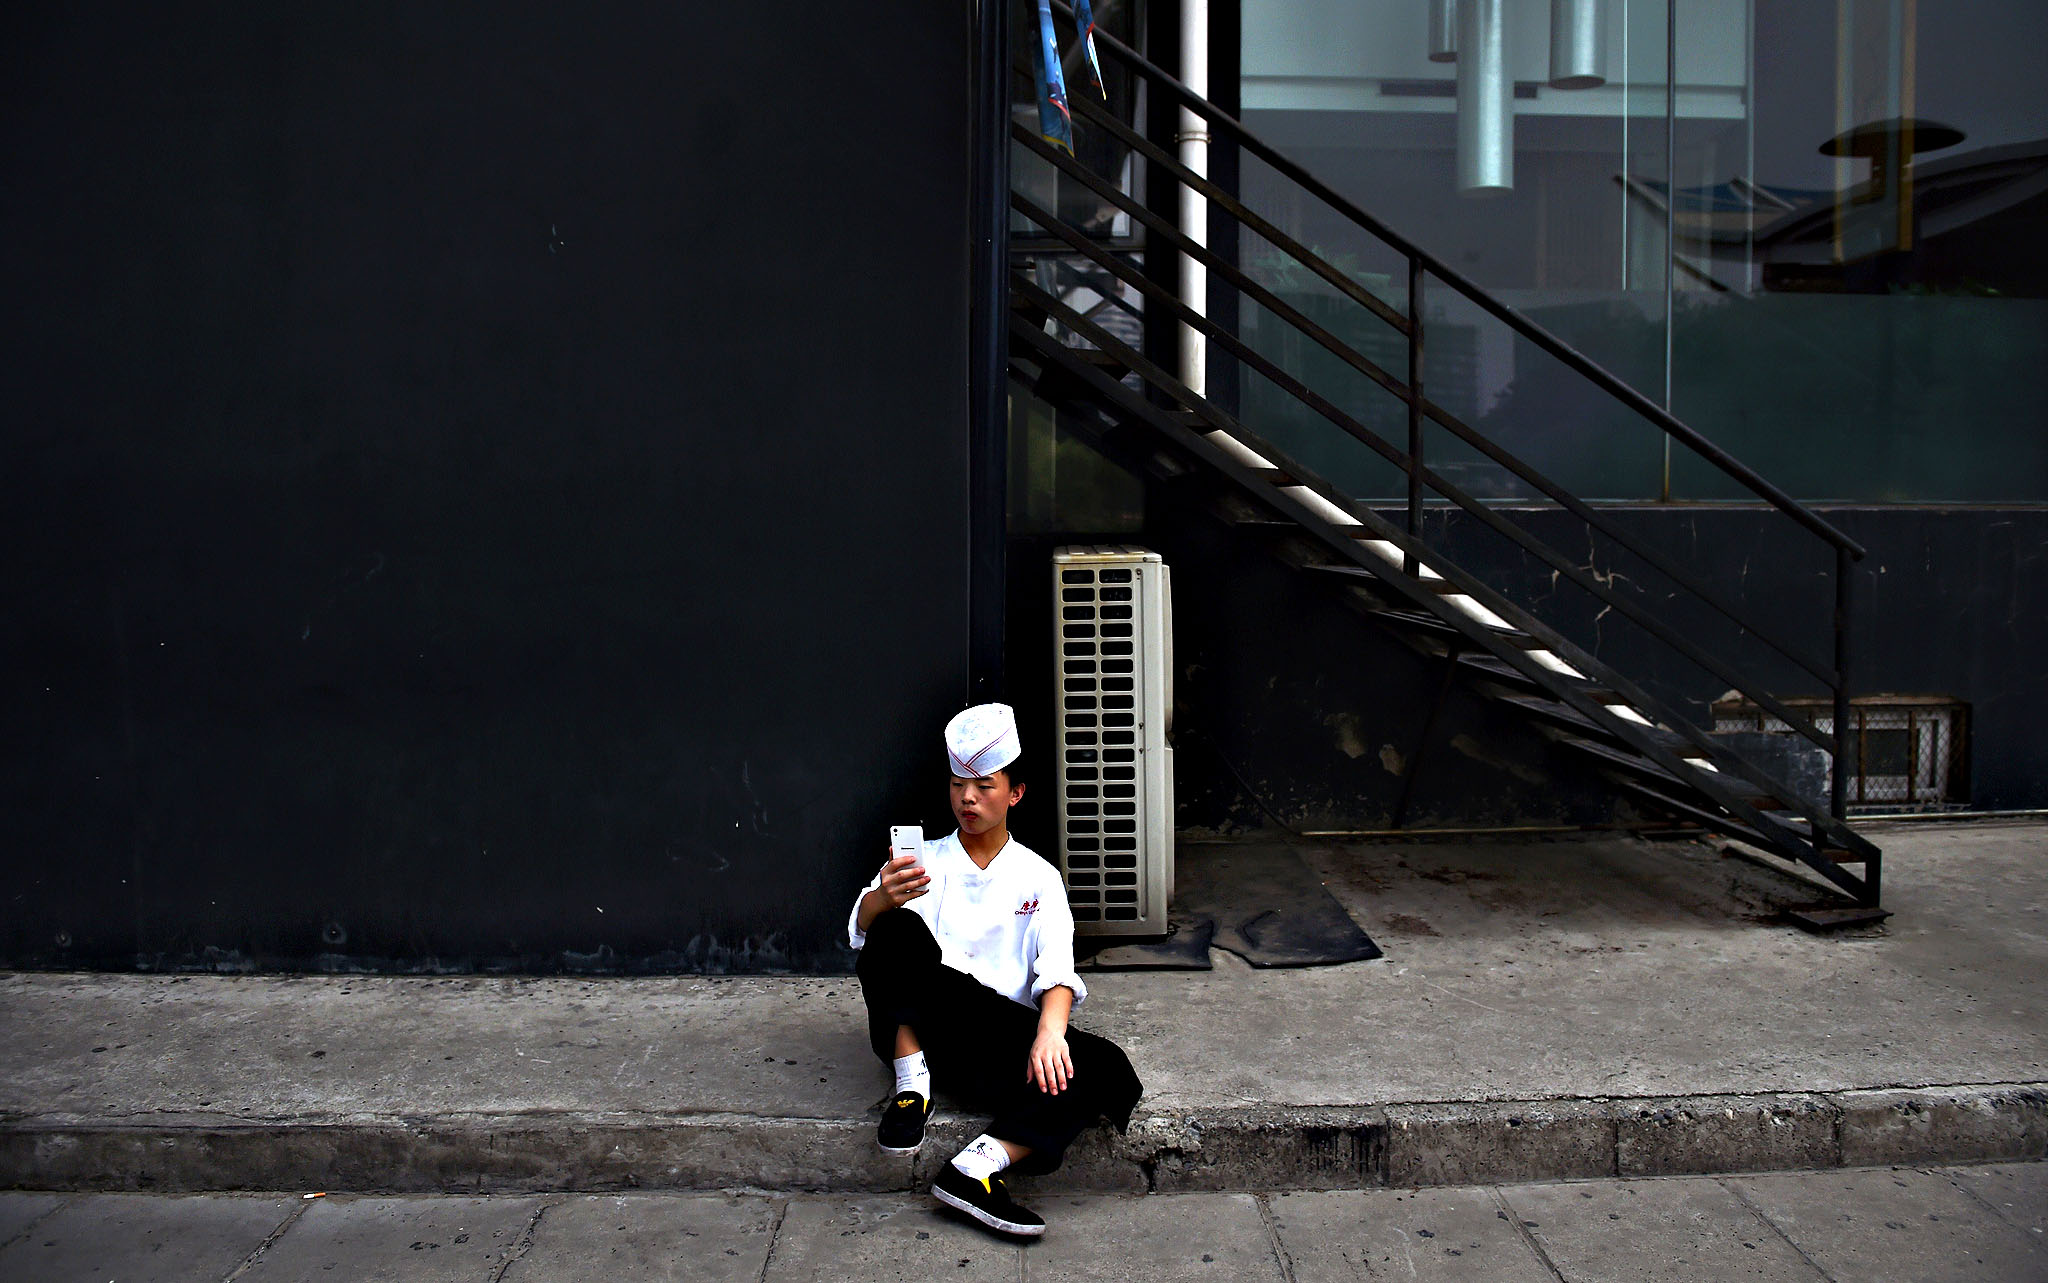 A cook uses his smartphone during a break outside a restaurant in Beijing on July 10, 2015